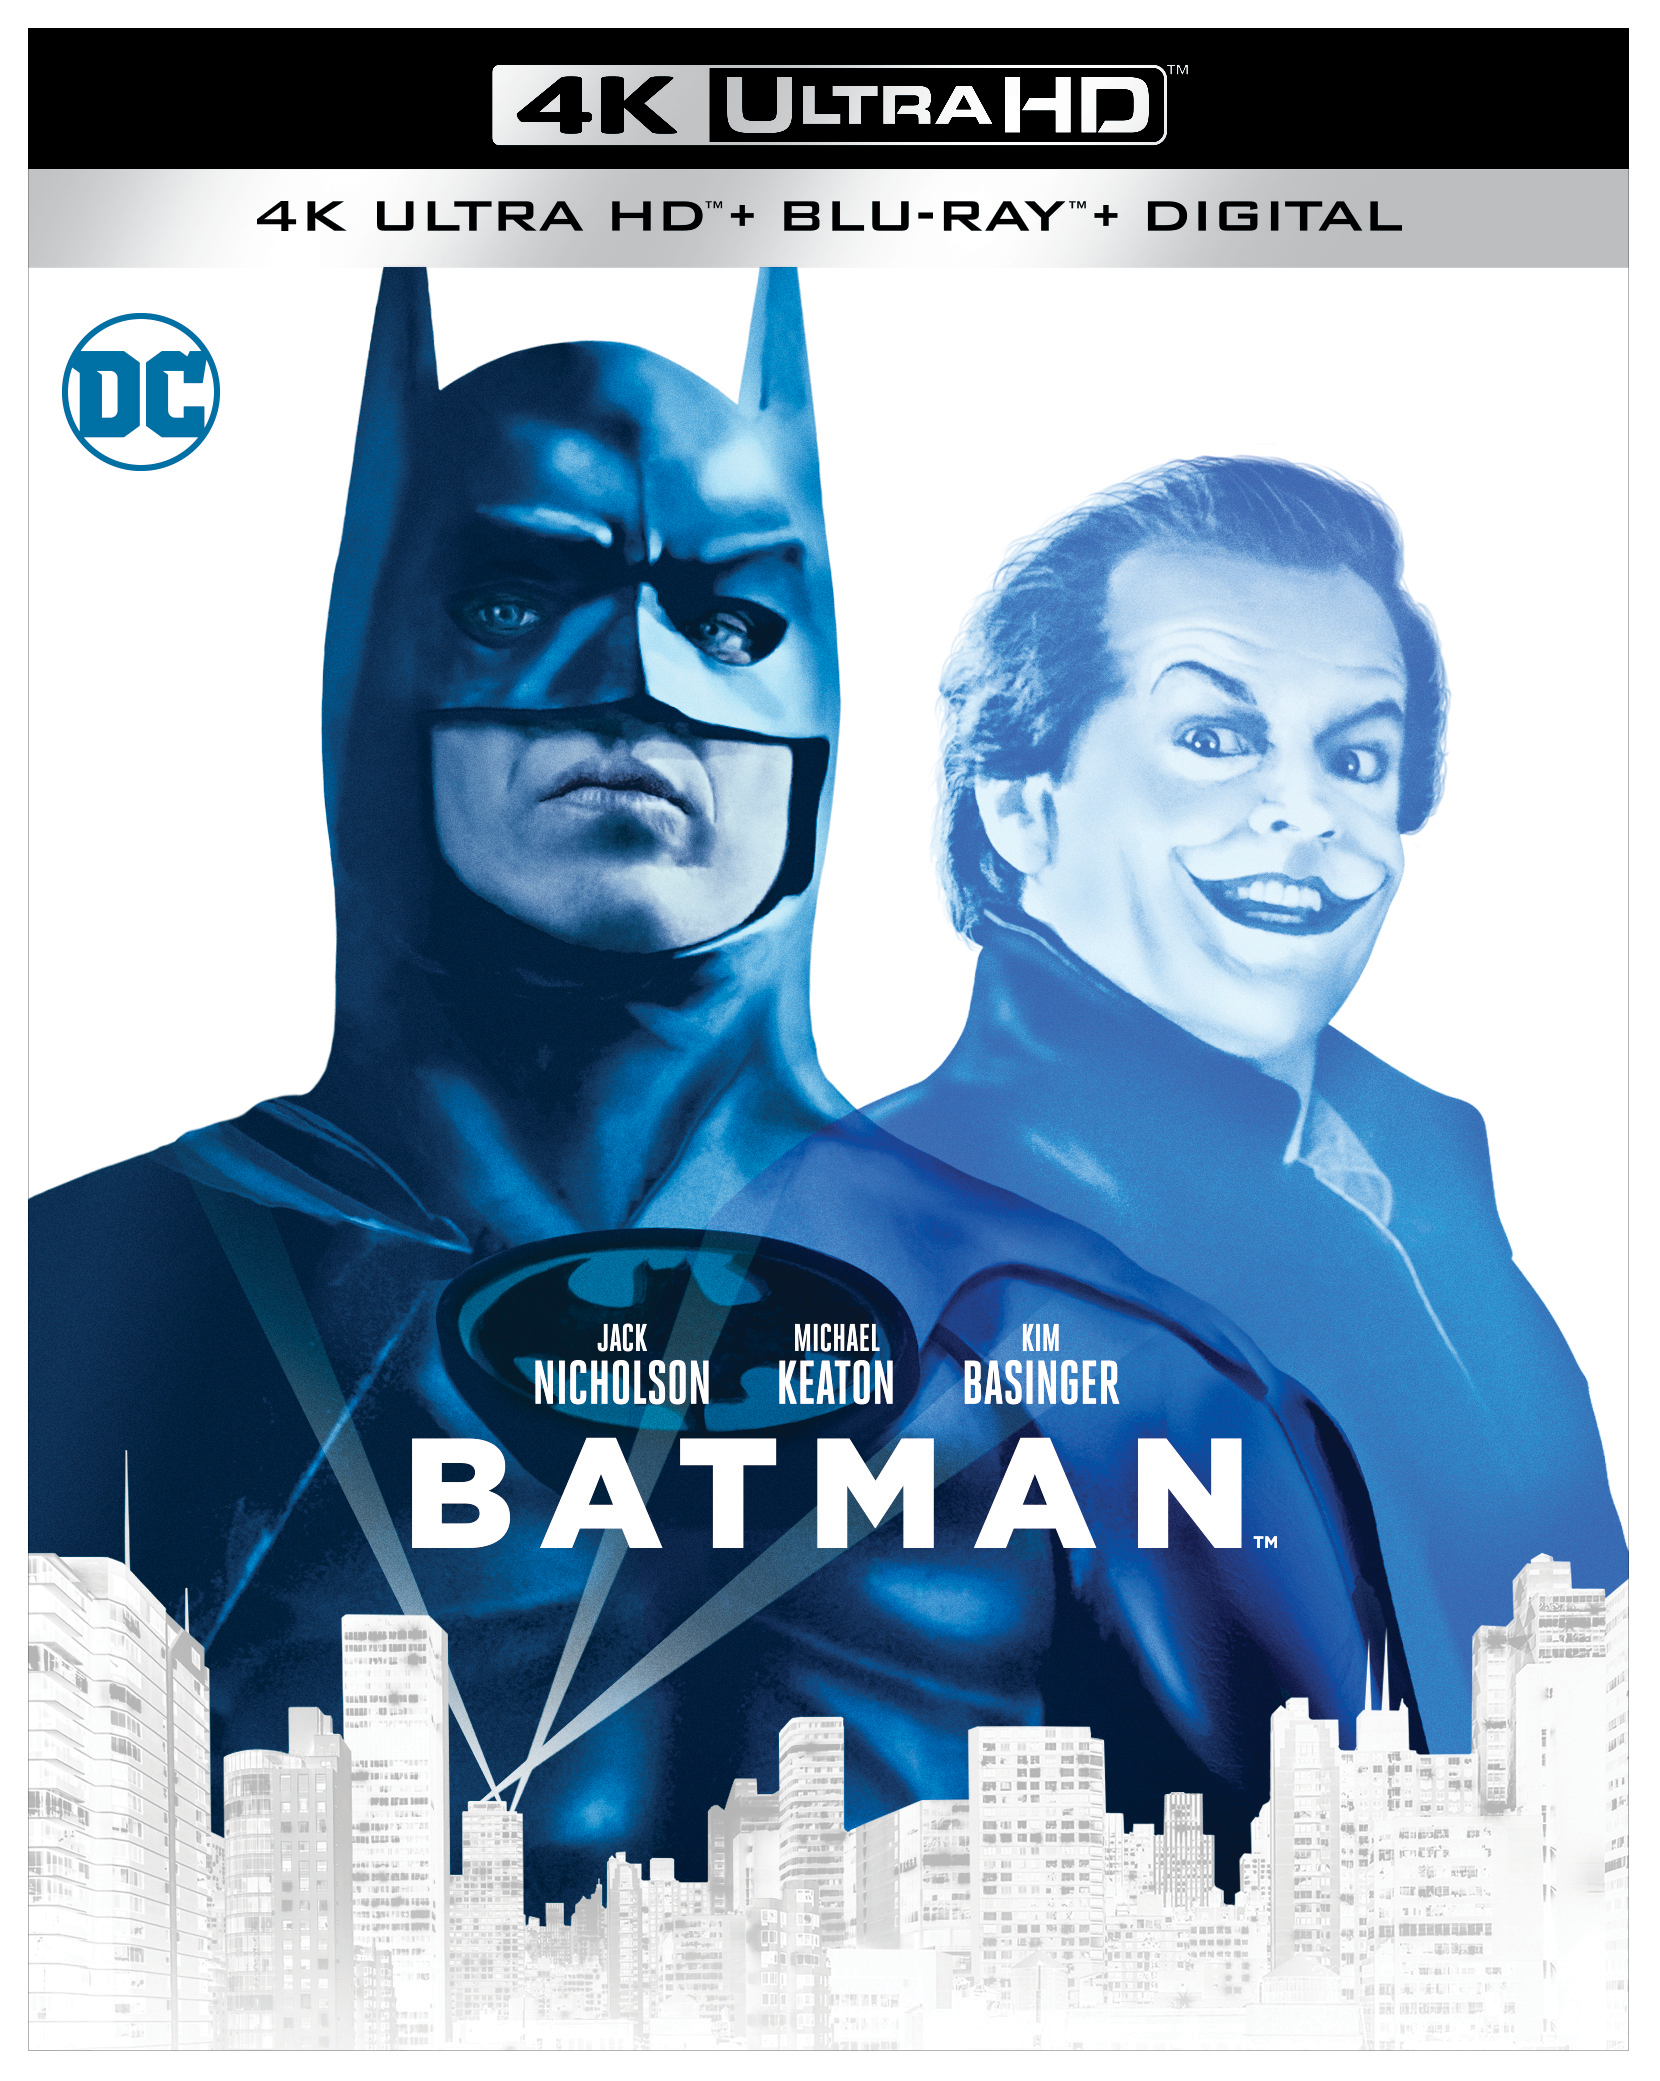 Own Batman Batman Returns Batman Forever And Batman Robin On 4k Ultra Hd Combo Pack On June 4 Own The Four Film Collection On September 17 Justlovemovies Com